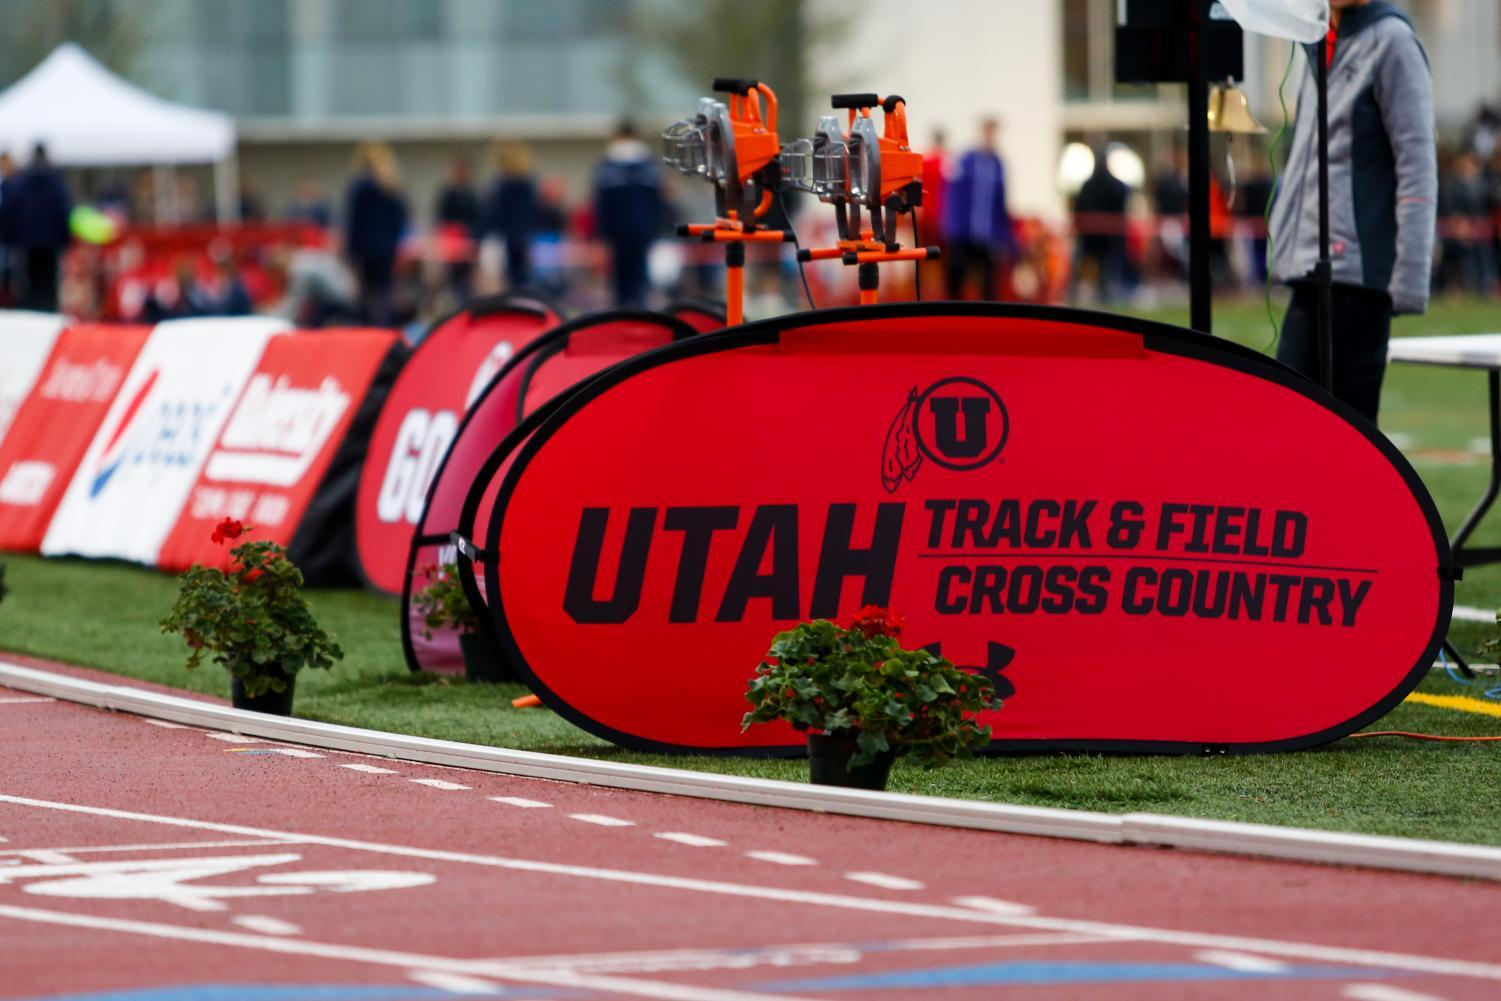 The University of Utah and Weber State host the Utah Spring Classic at the McCarthey Family Track and Field Complex in Salt Lake City, UT on Friday April 06, 2018. (Photo by Curtis Lin | Daily Utah Chronicle)